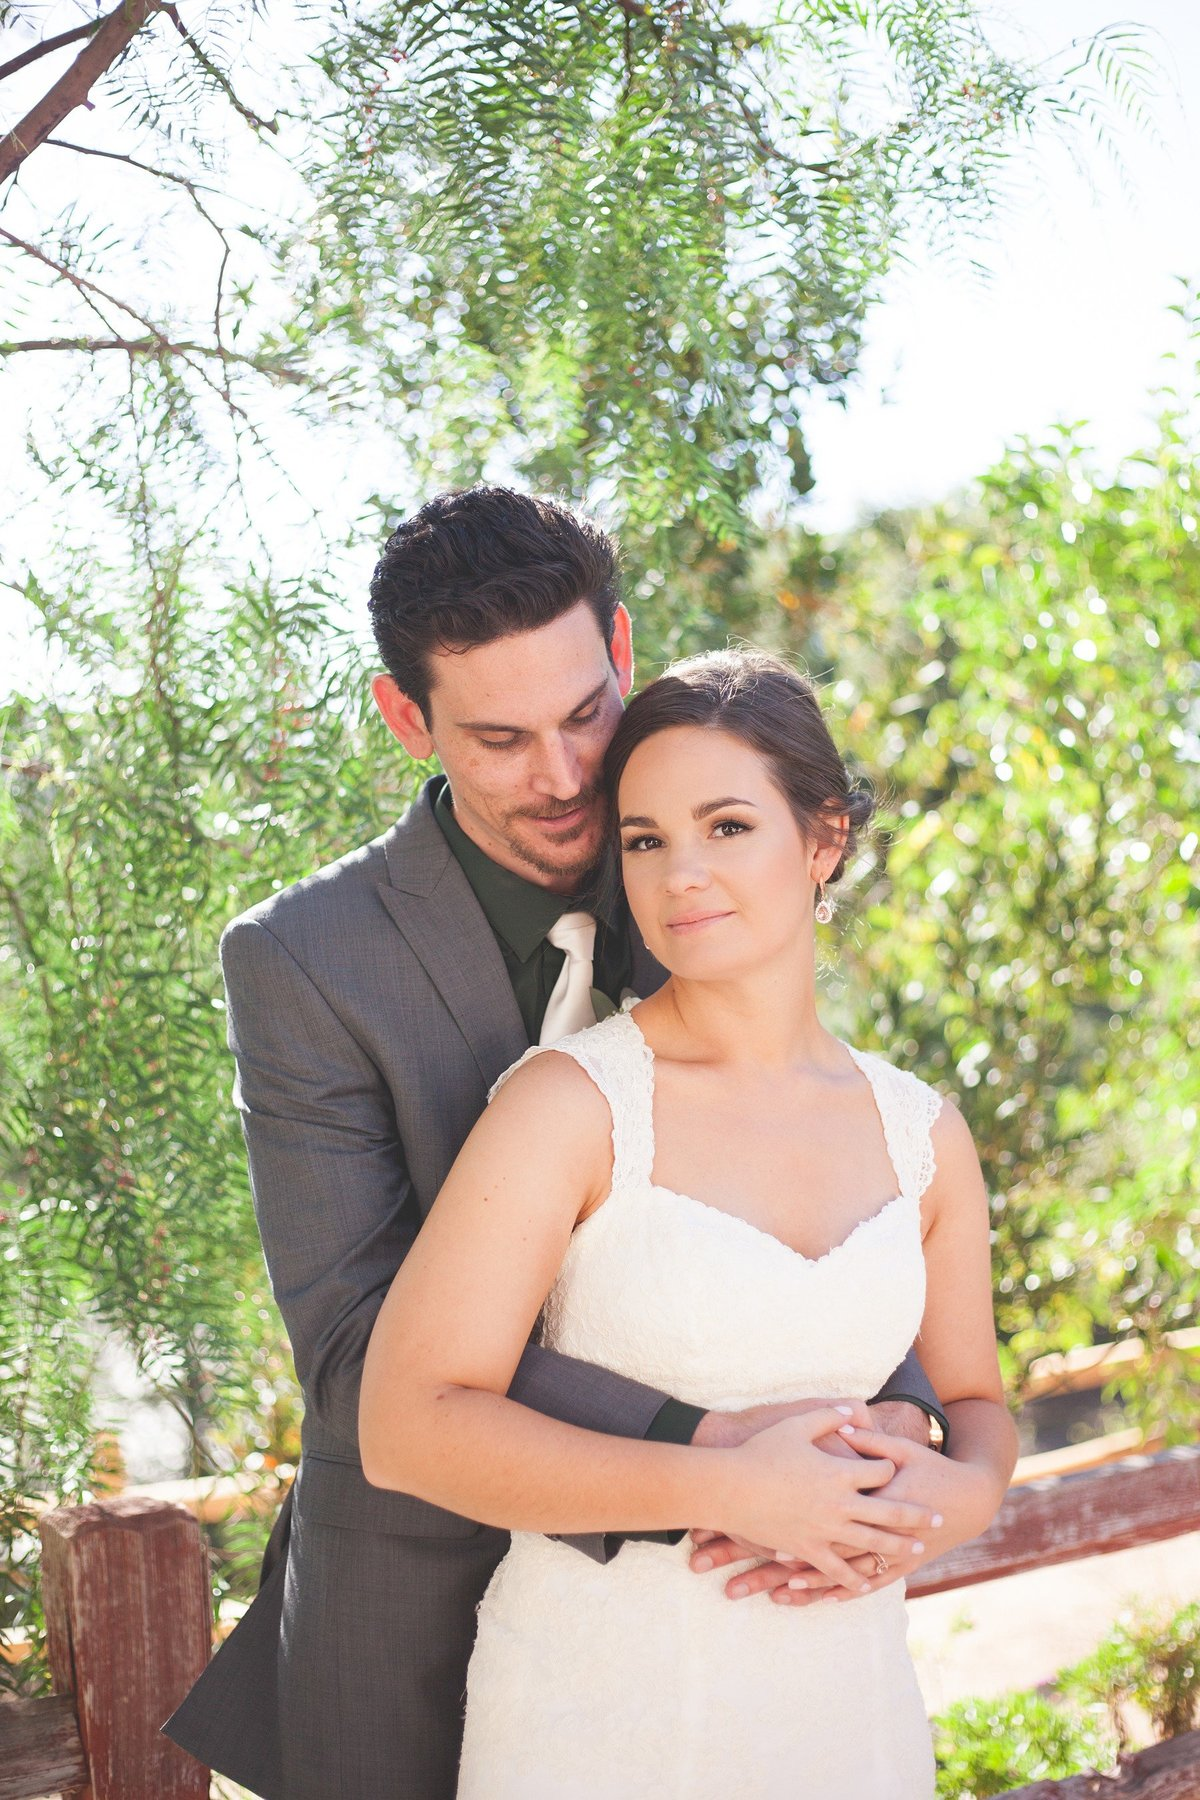 atascadero-wedding-photography-emily-gunn-29_web